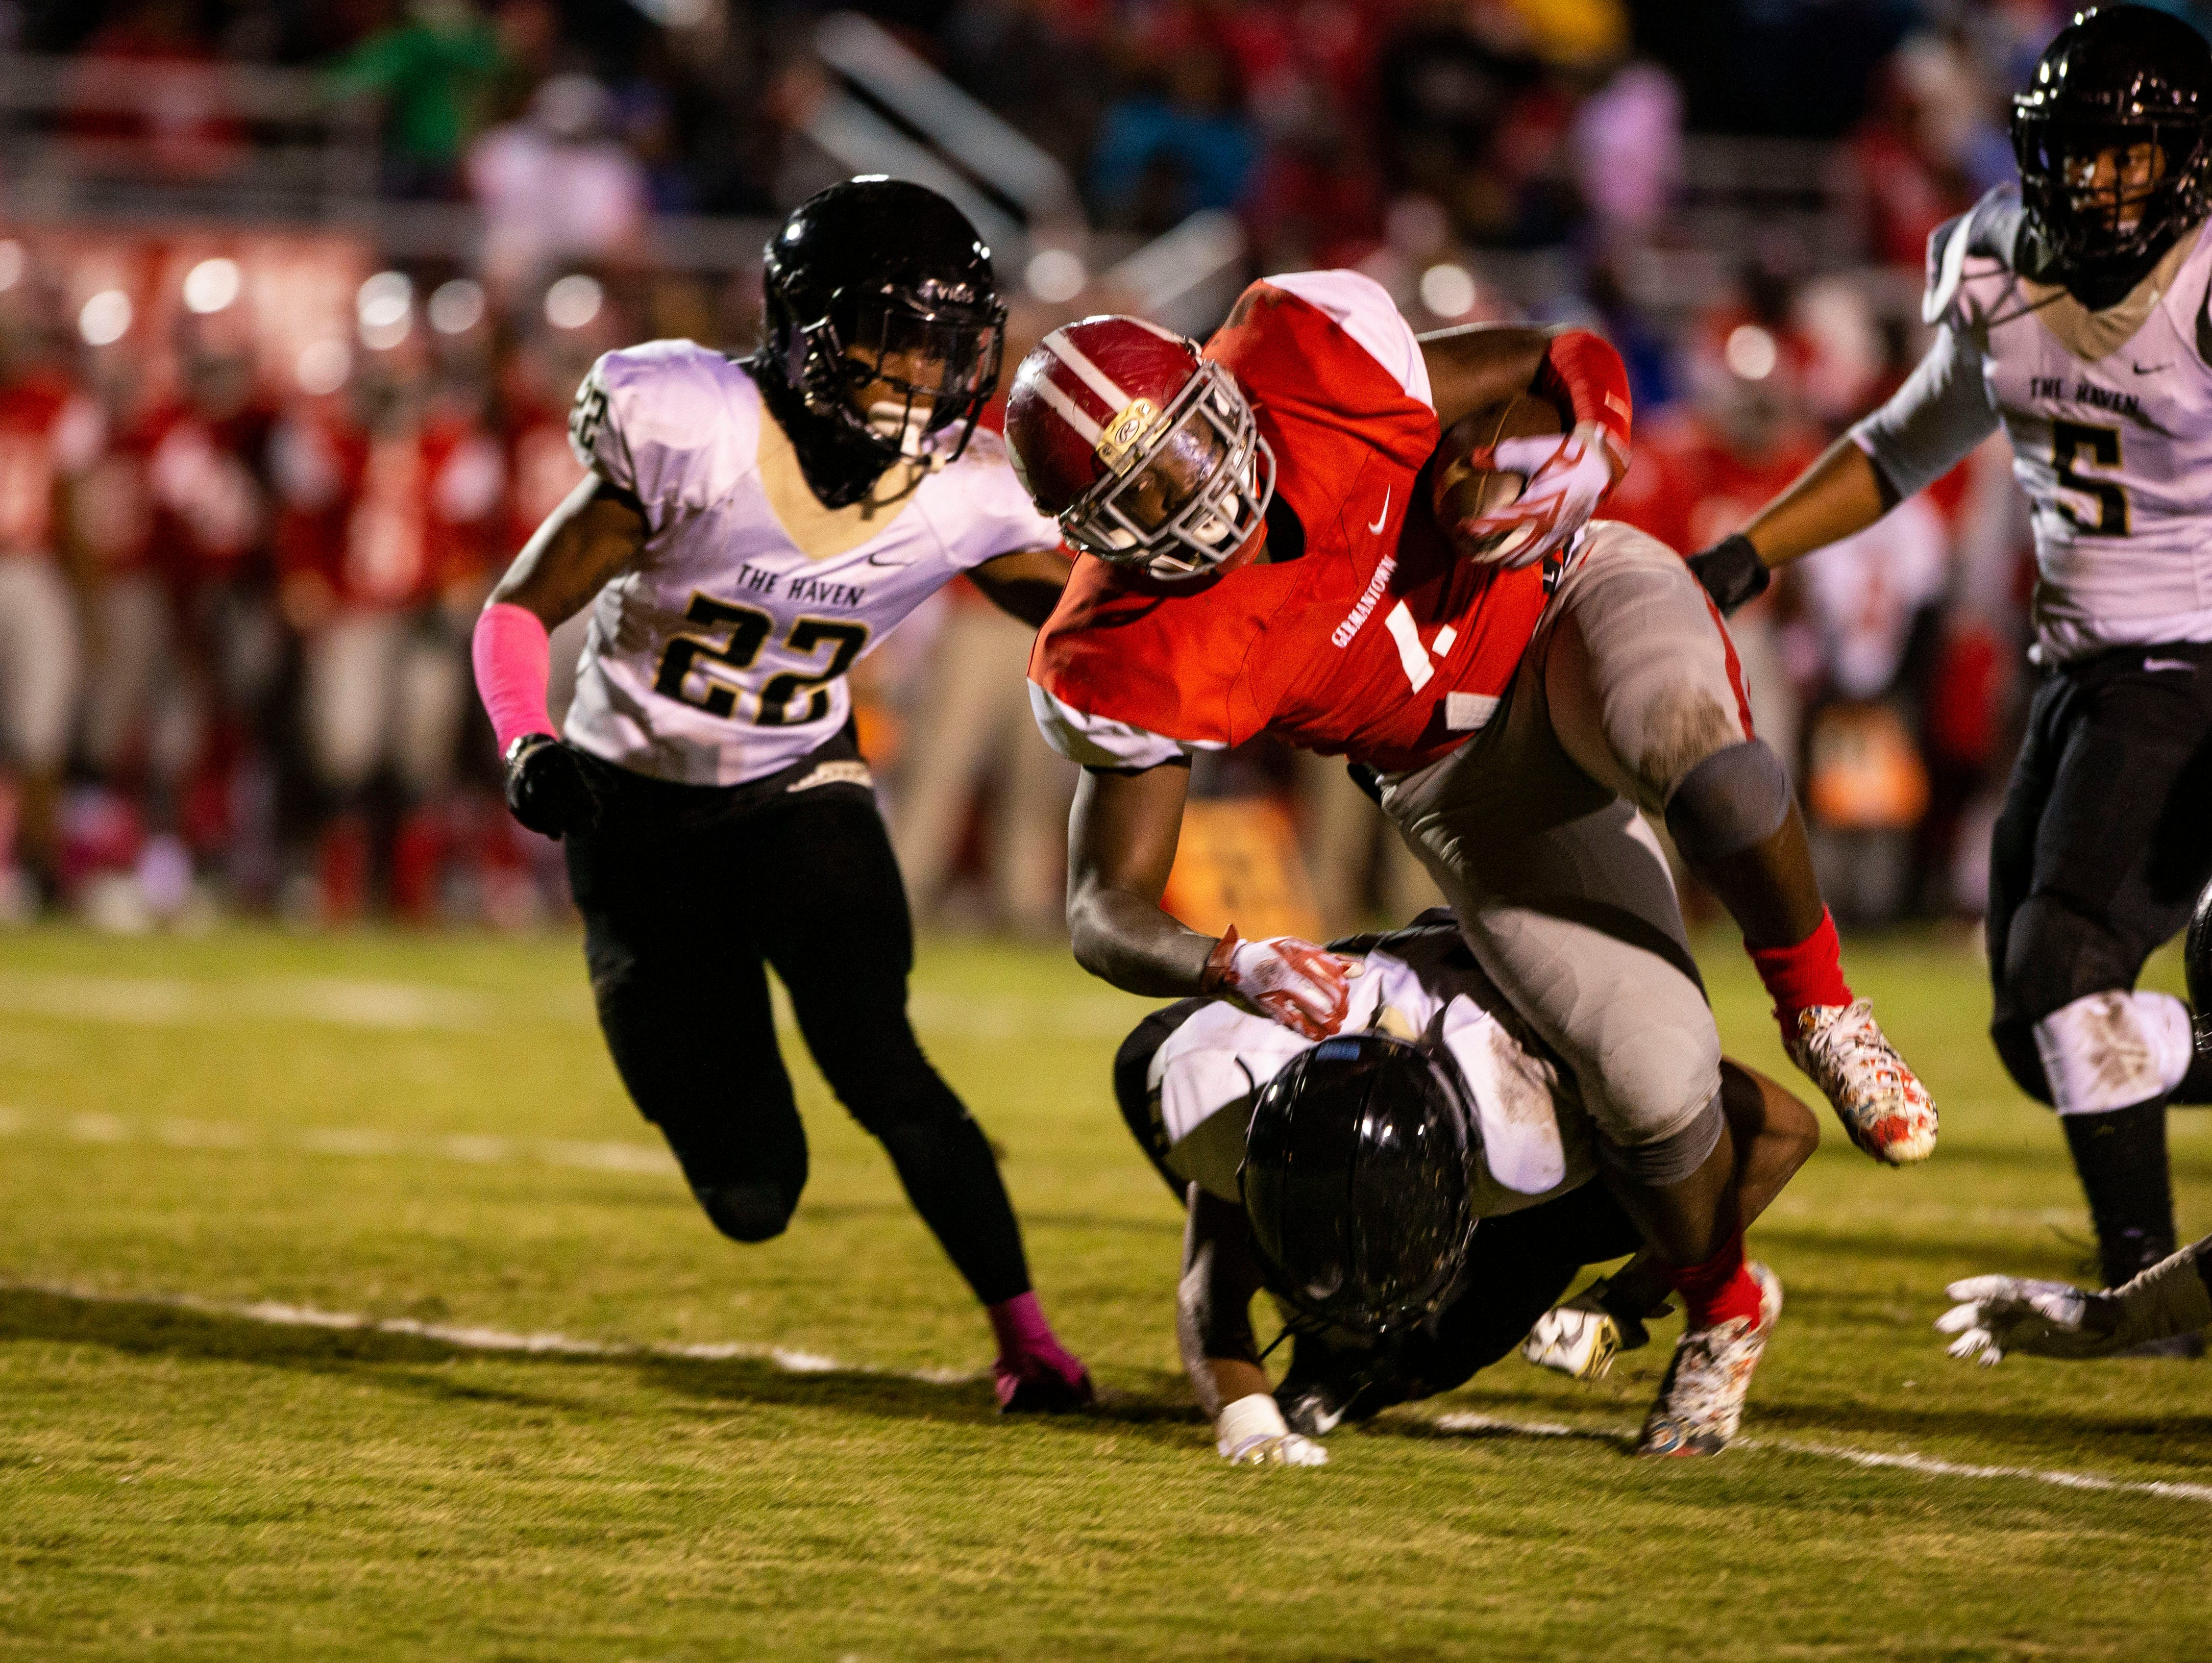 Germantown Devils running back  Eric Foster (4) runs the ball during the football game between the Germantown Devils and the Whitehaven Tigers Friday October 26, 2018.